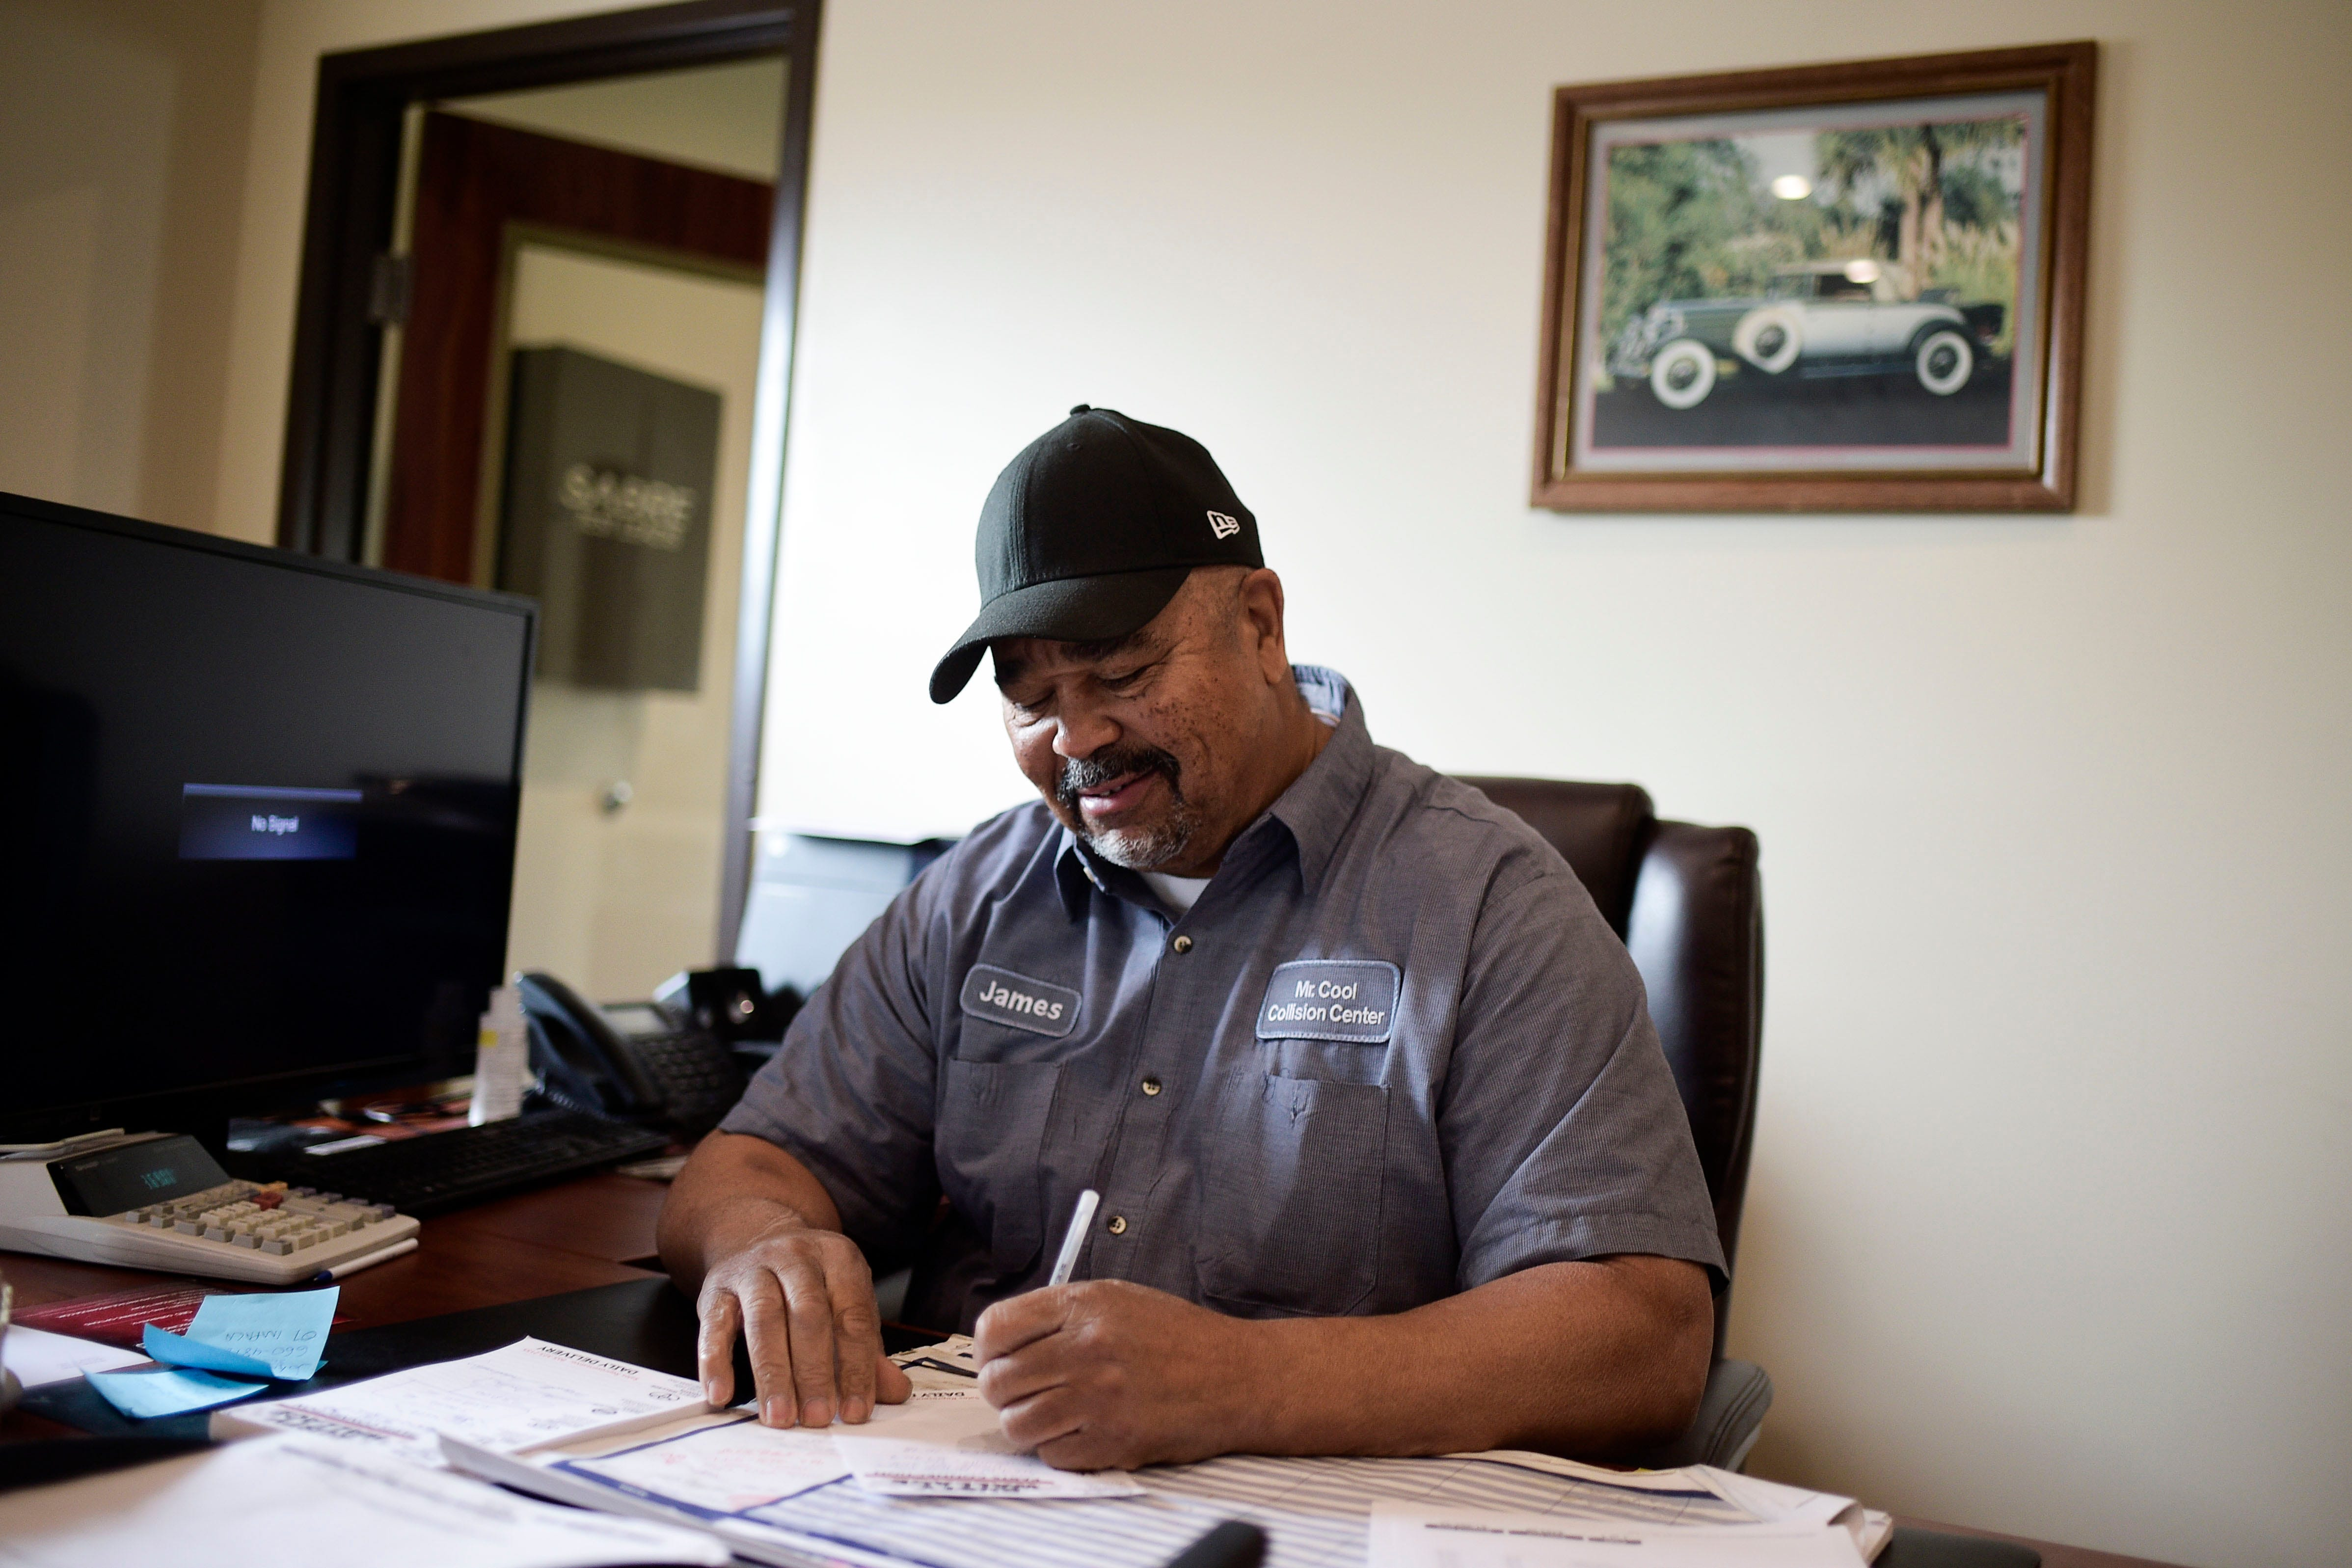 James Brown, aka Mr. Cool, works at his desk at Mr. Cool Collision on Gleason Dr. in Knoxville, Tenn. on Friday, April 16, 2021.